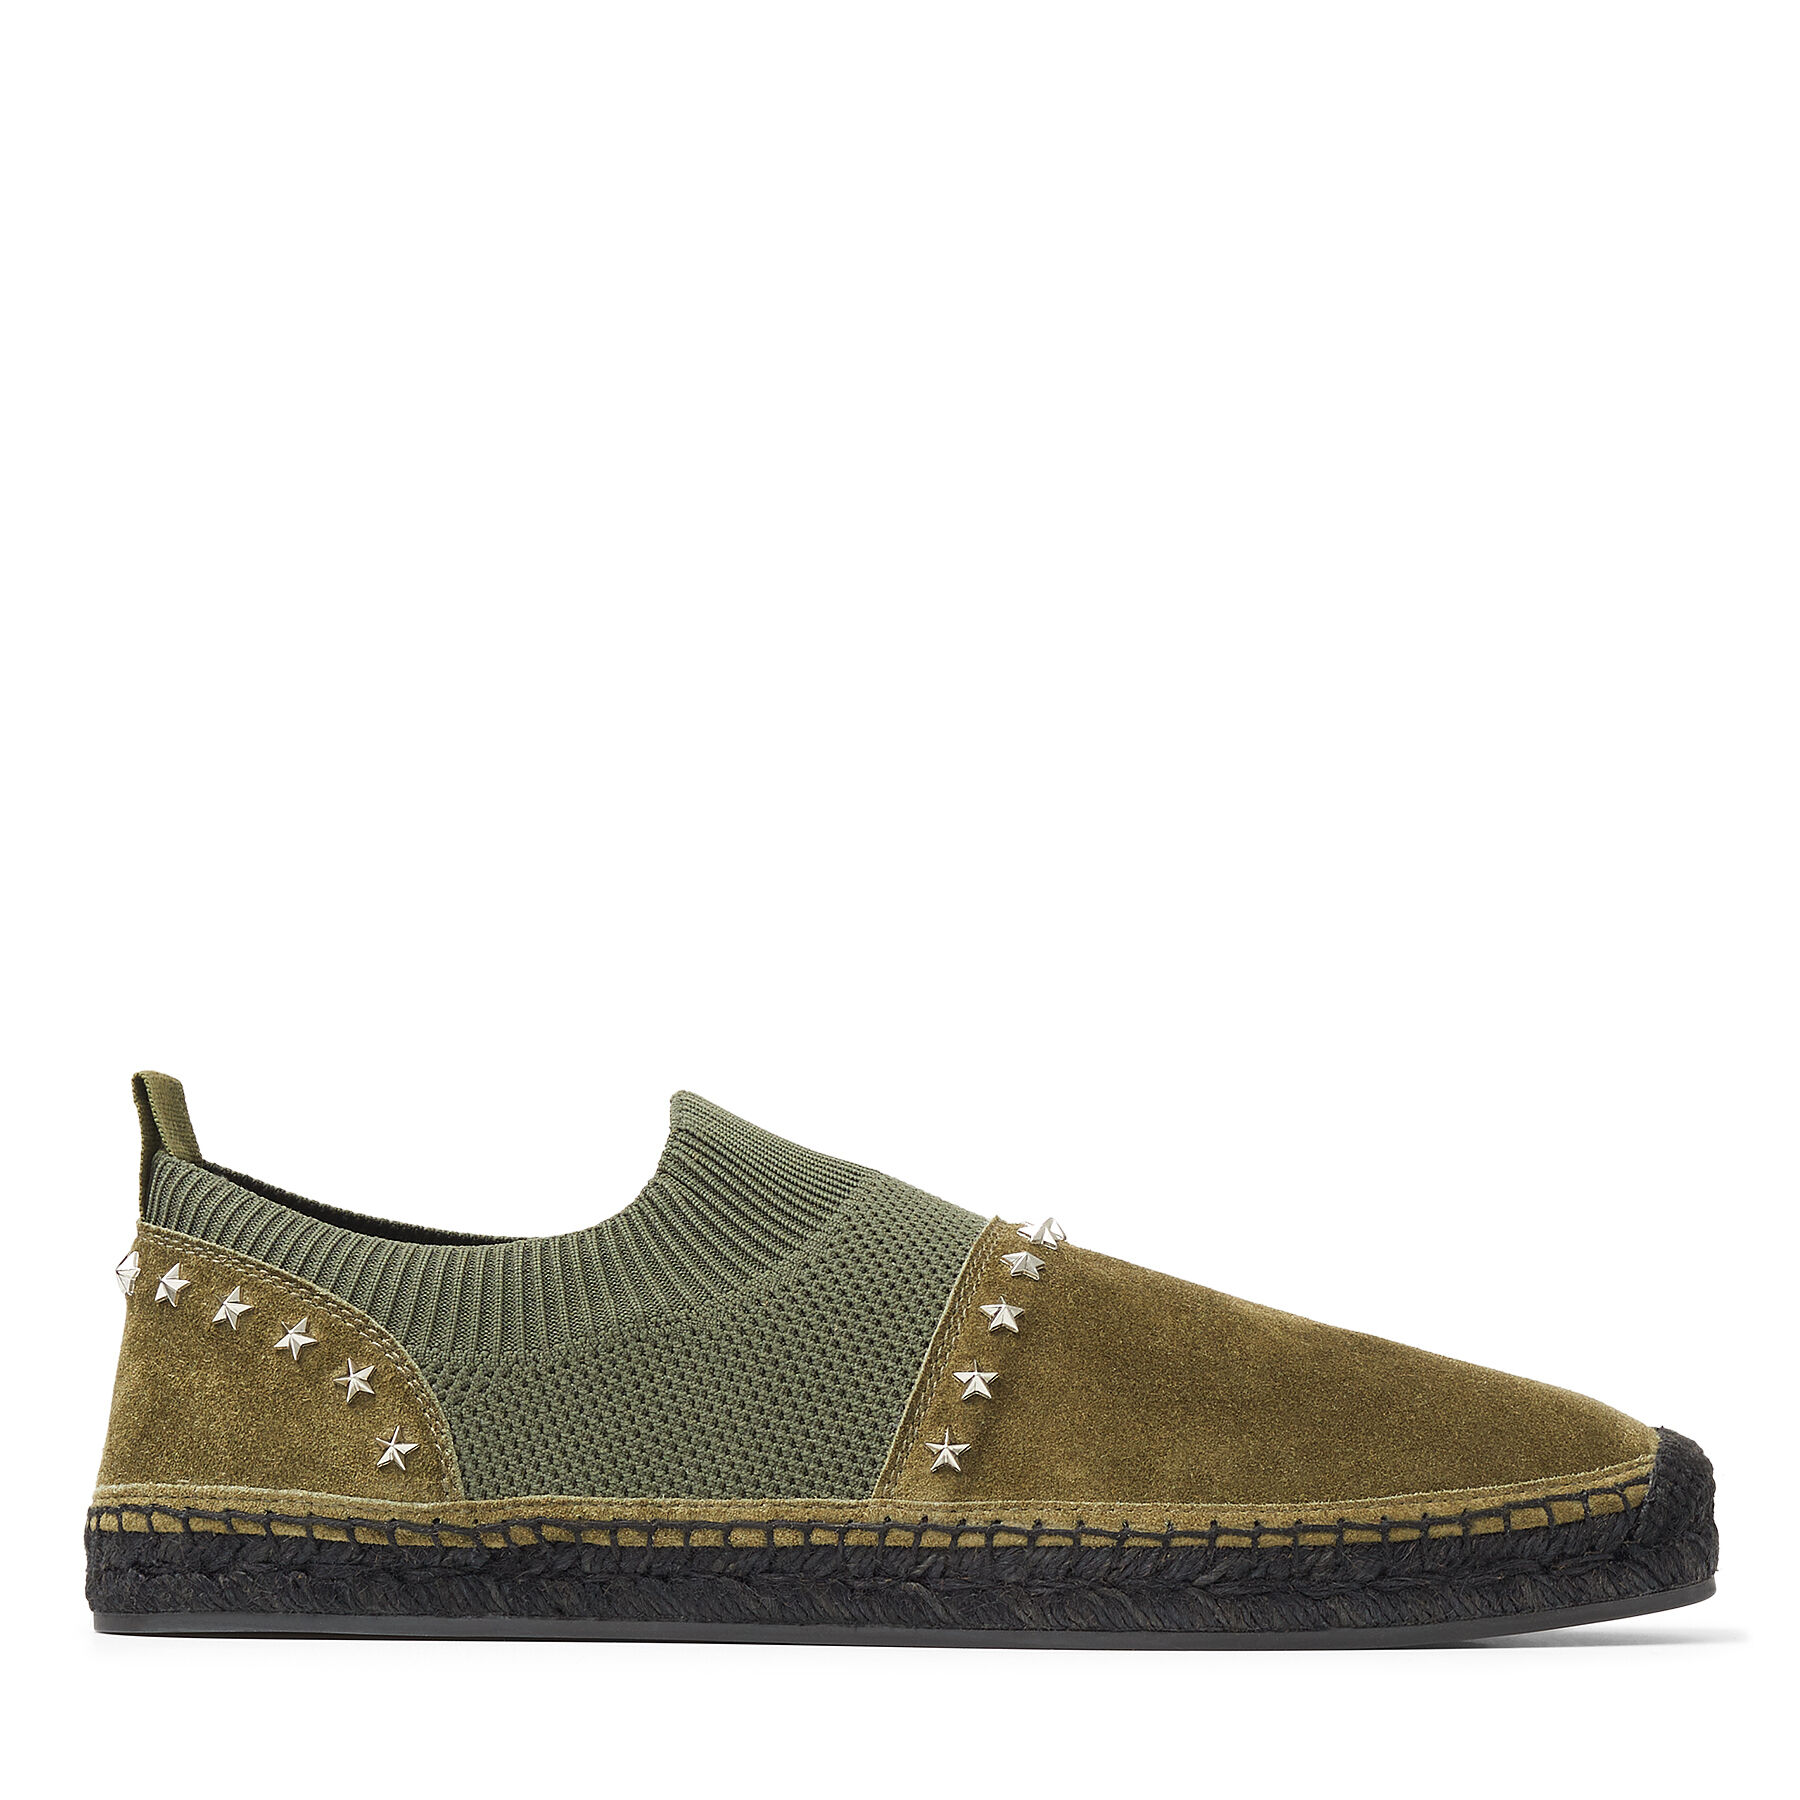 ENZO - Verde Knit and Soft Suede Espadrilles with Star Embellishment